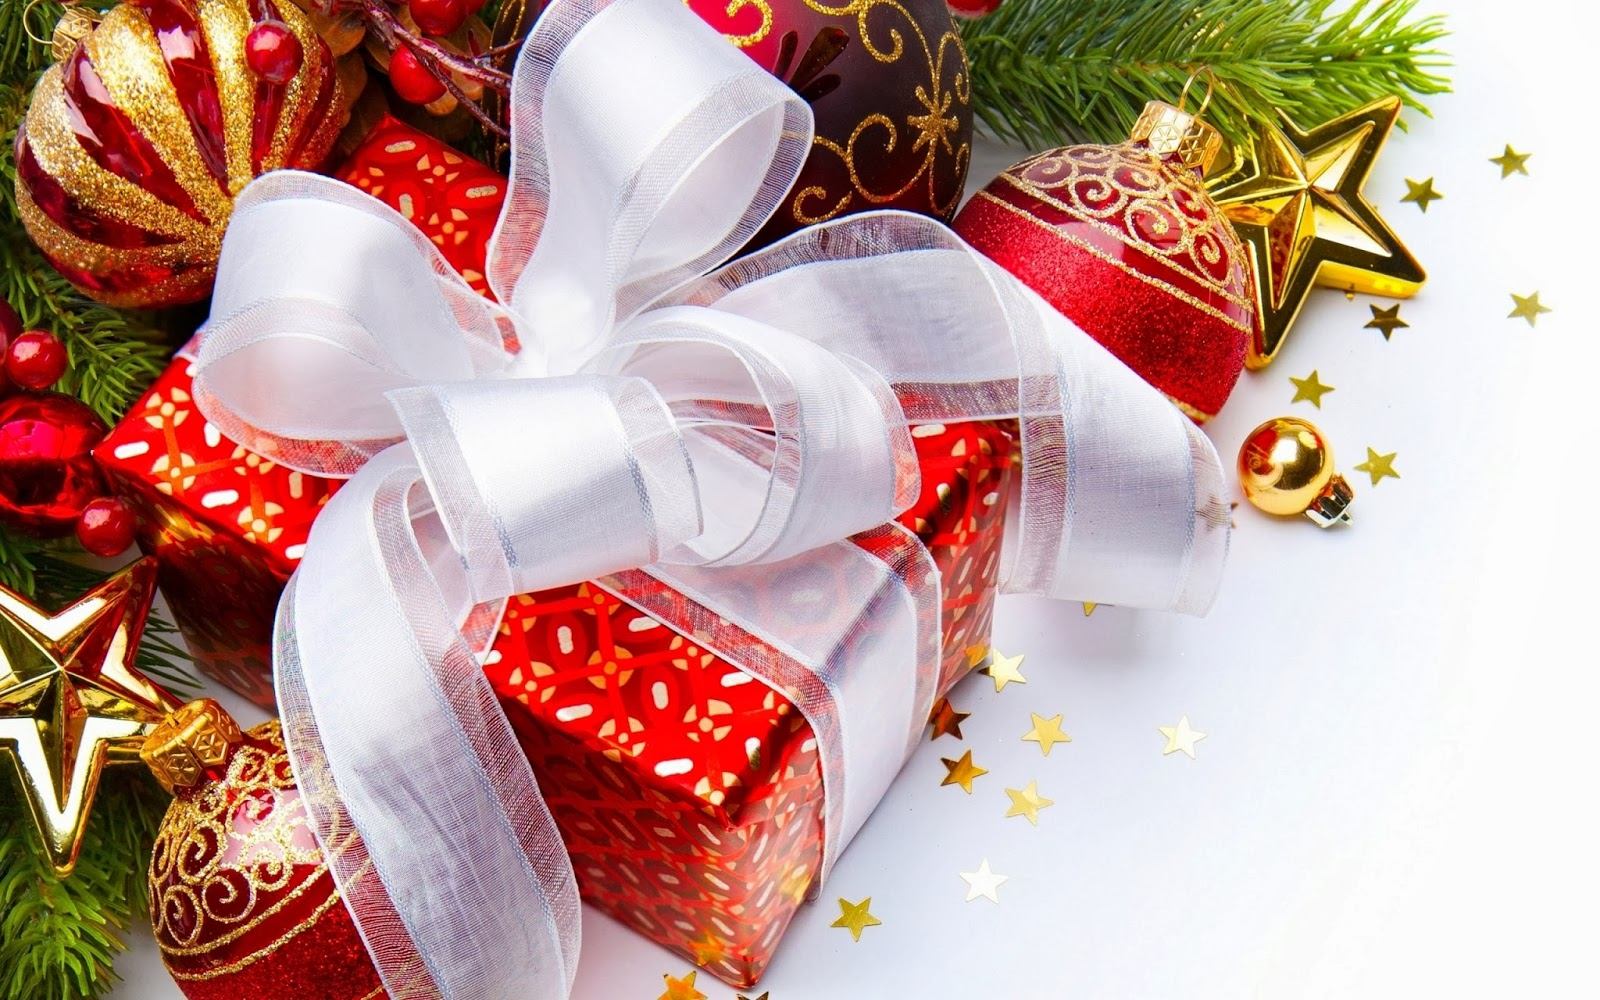 Christmas gift wallpapers free